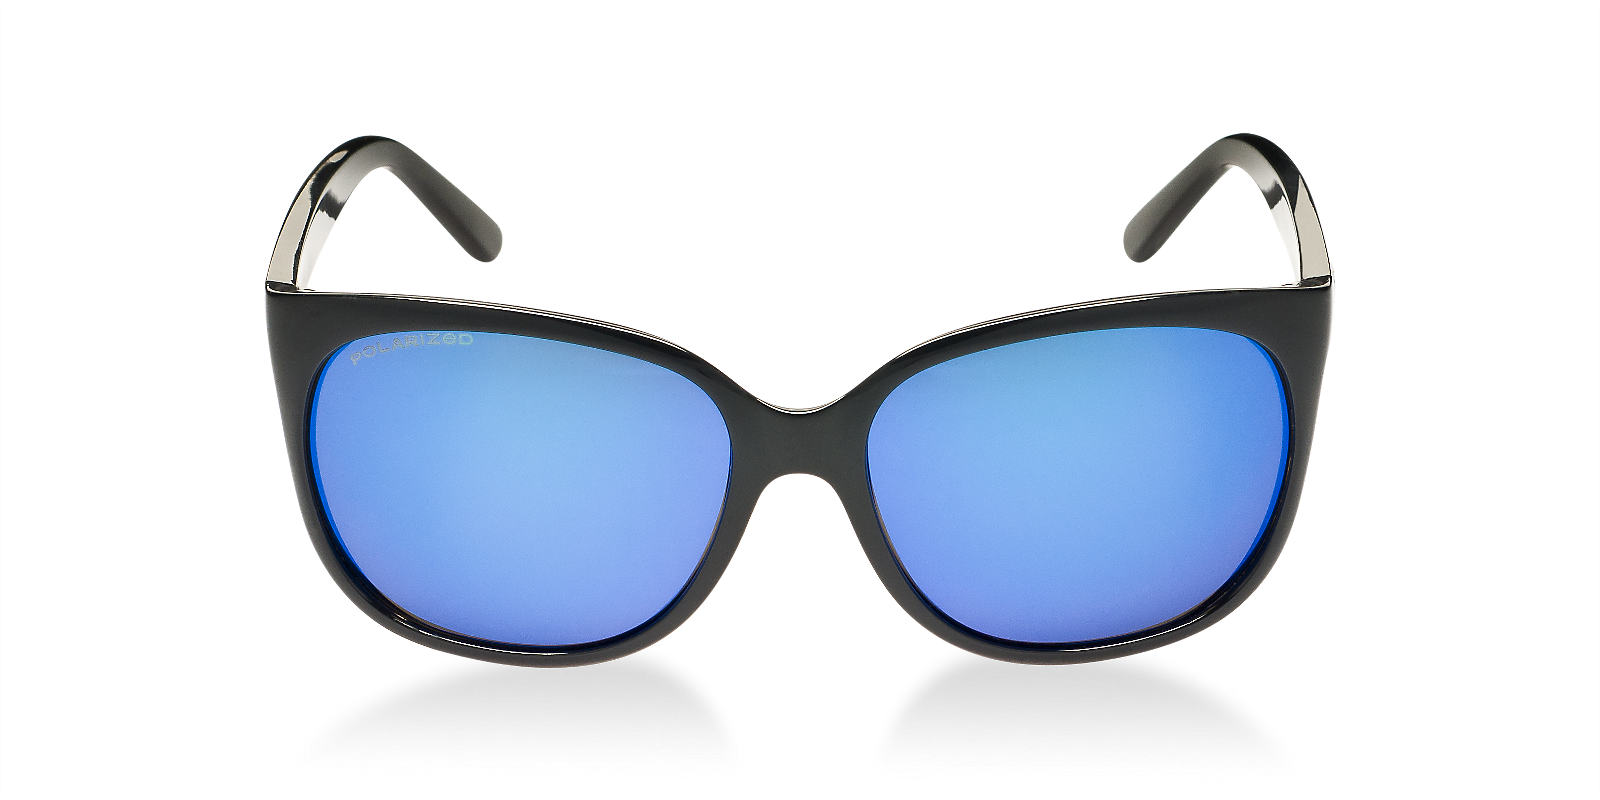 Sunglasses image #608